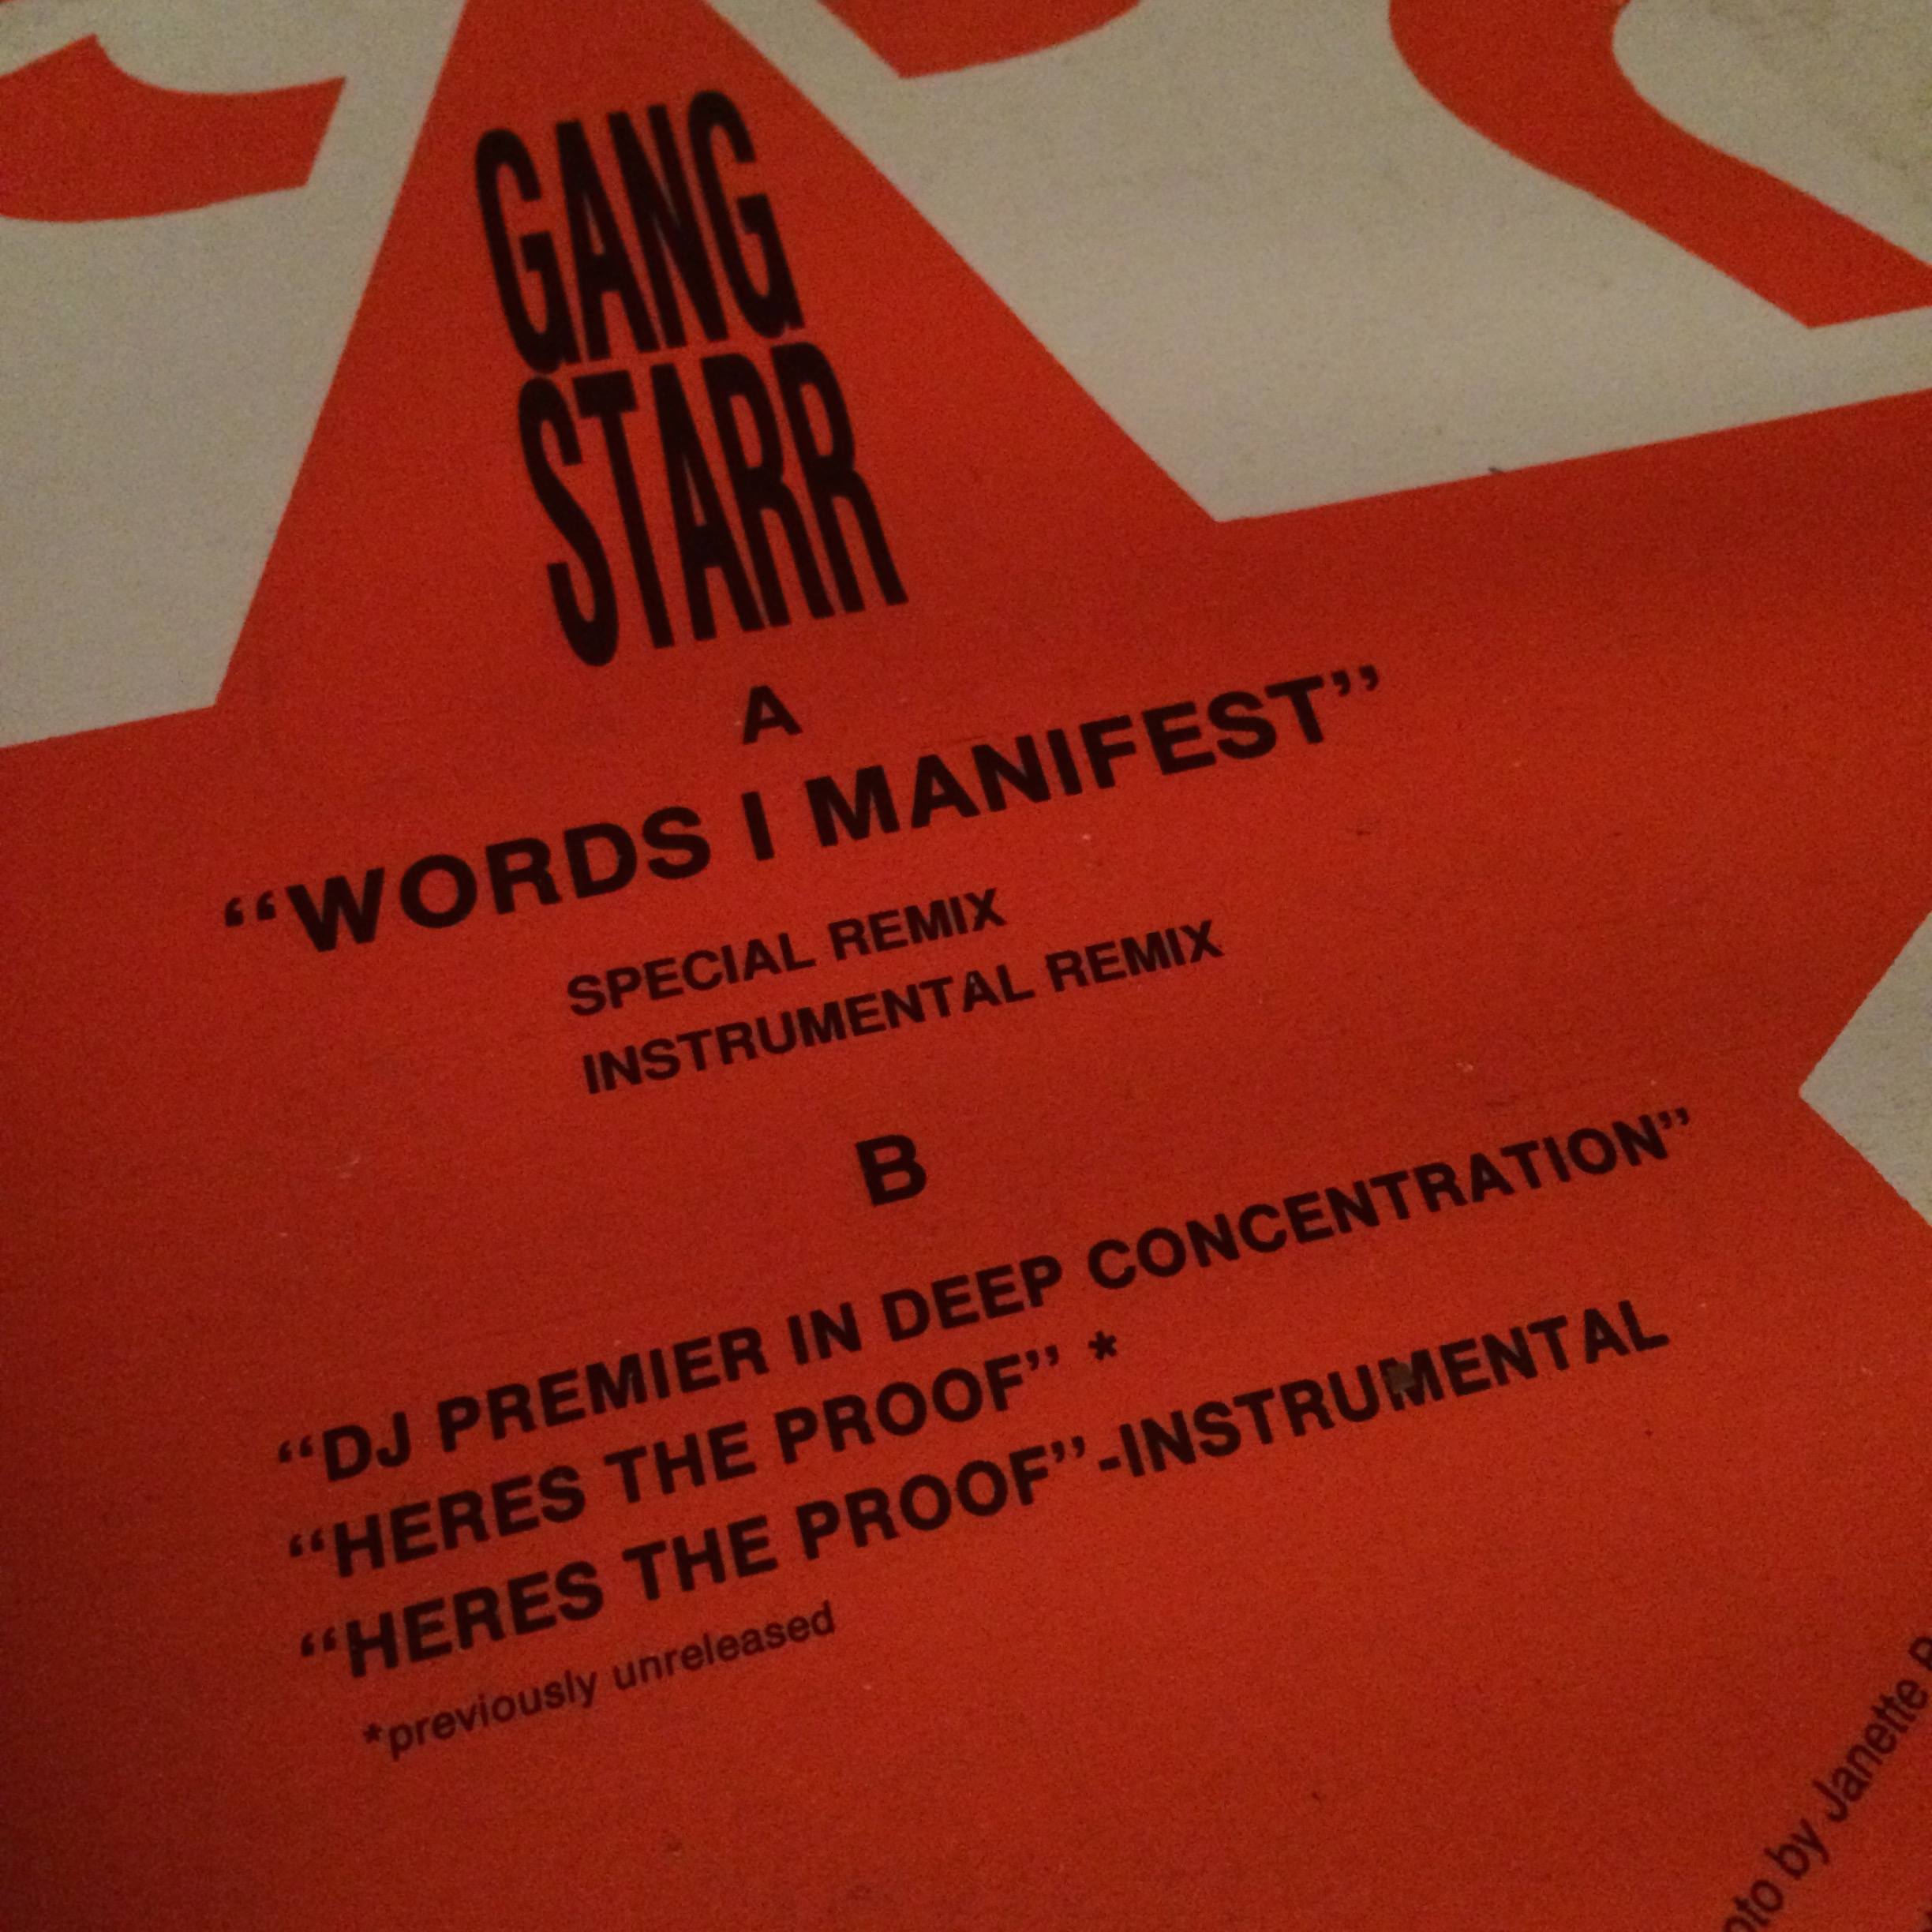 Words I Manfest Remixes